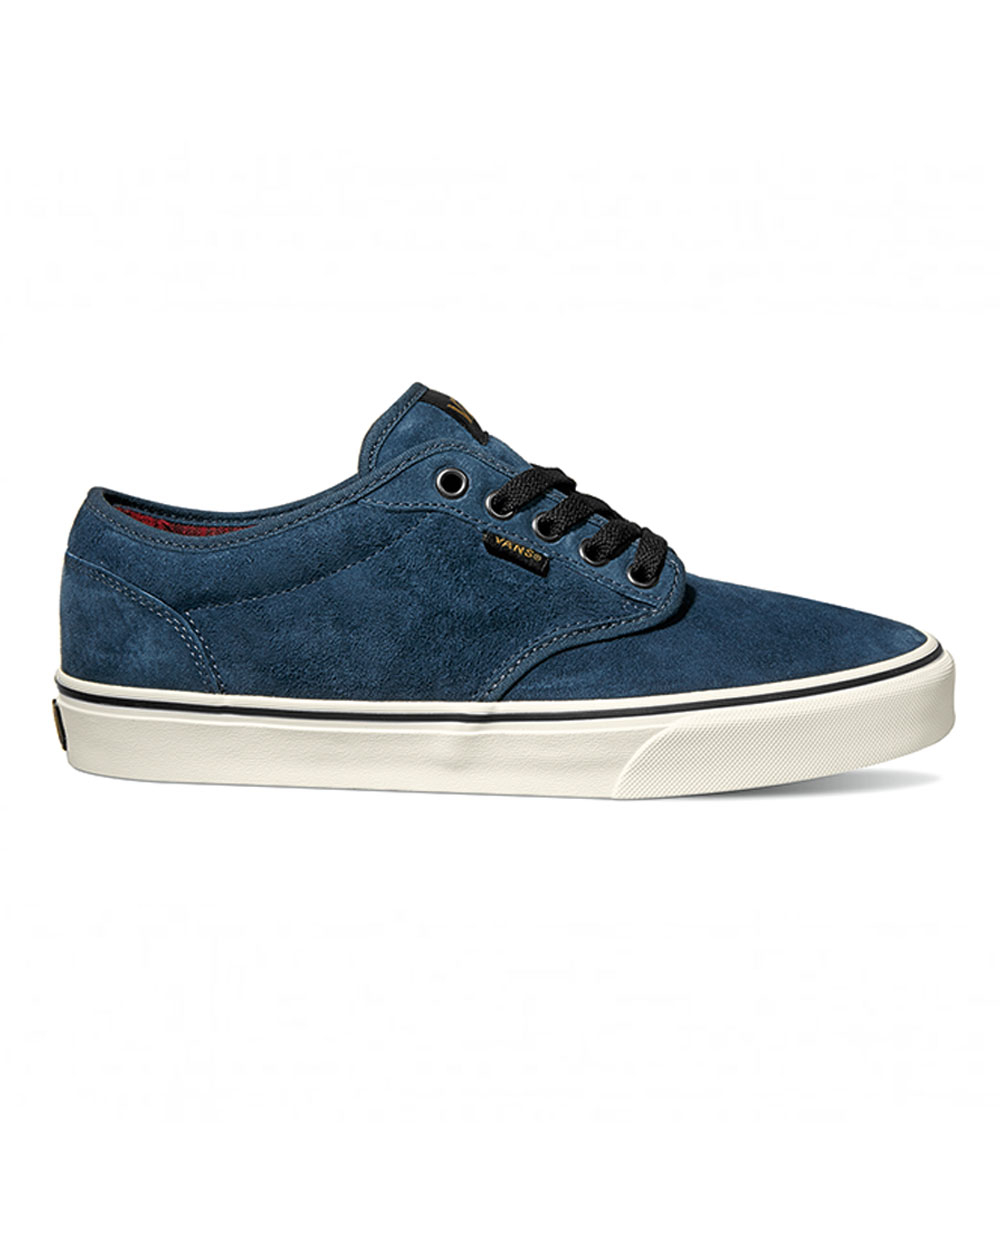 Vans Atwood MTE Flannel (navy/marshmallow)